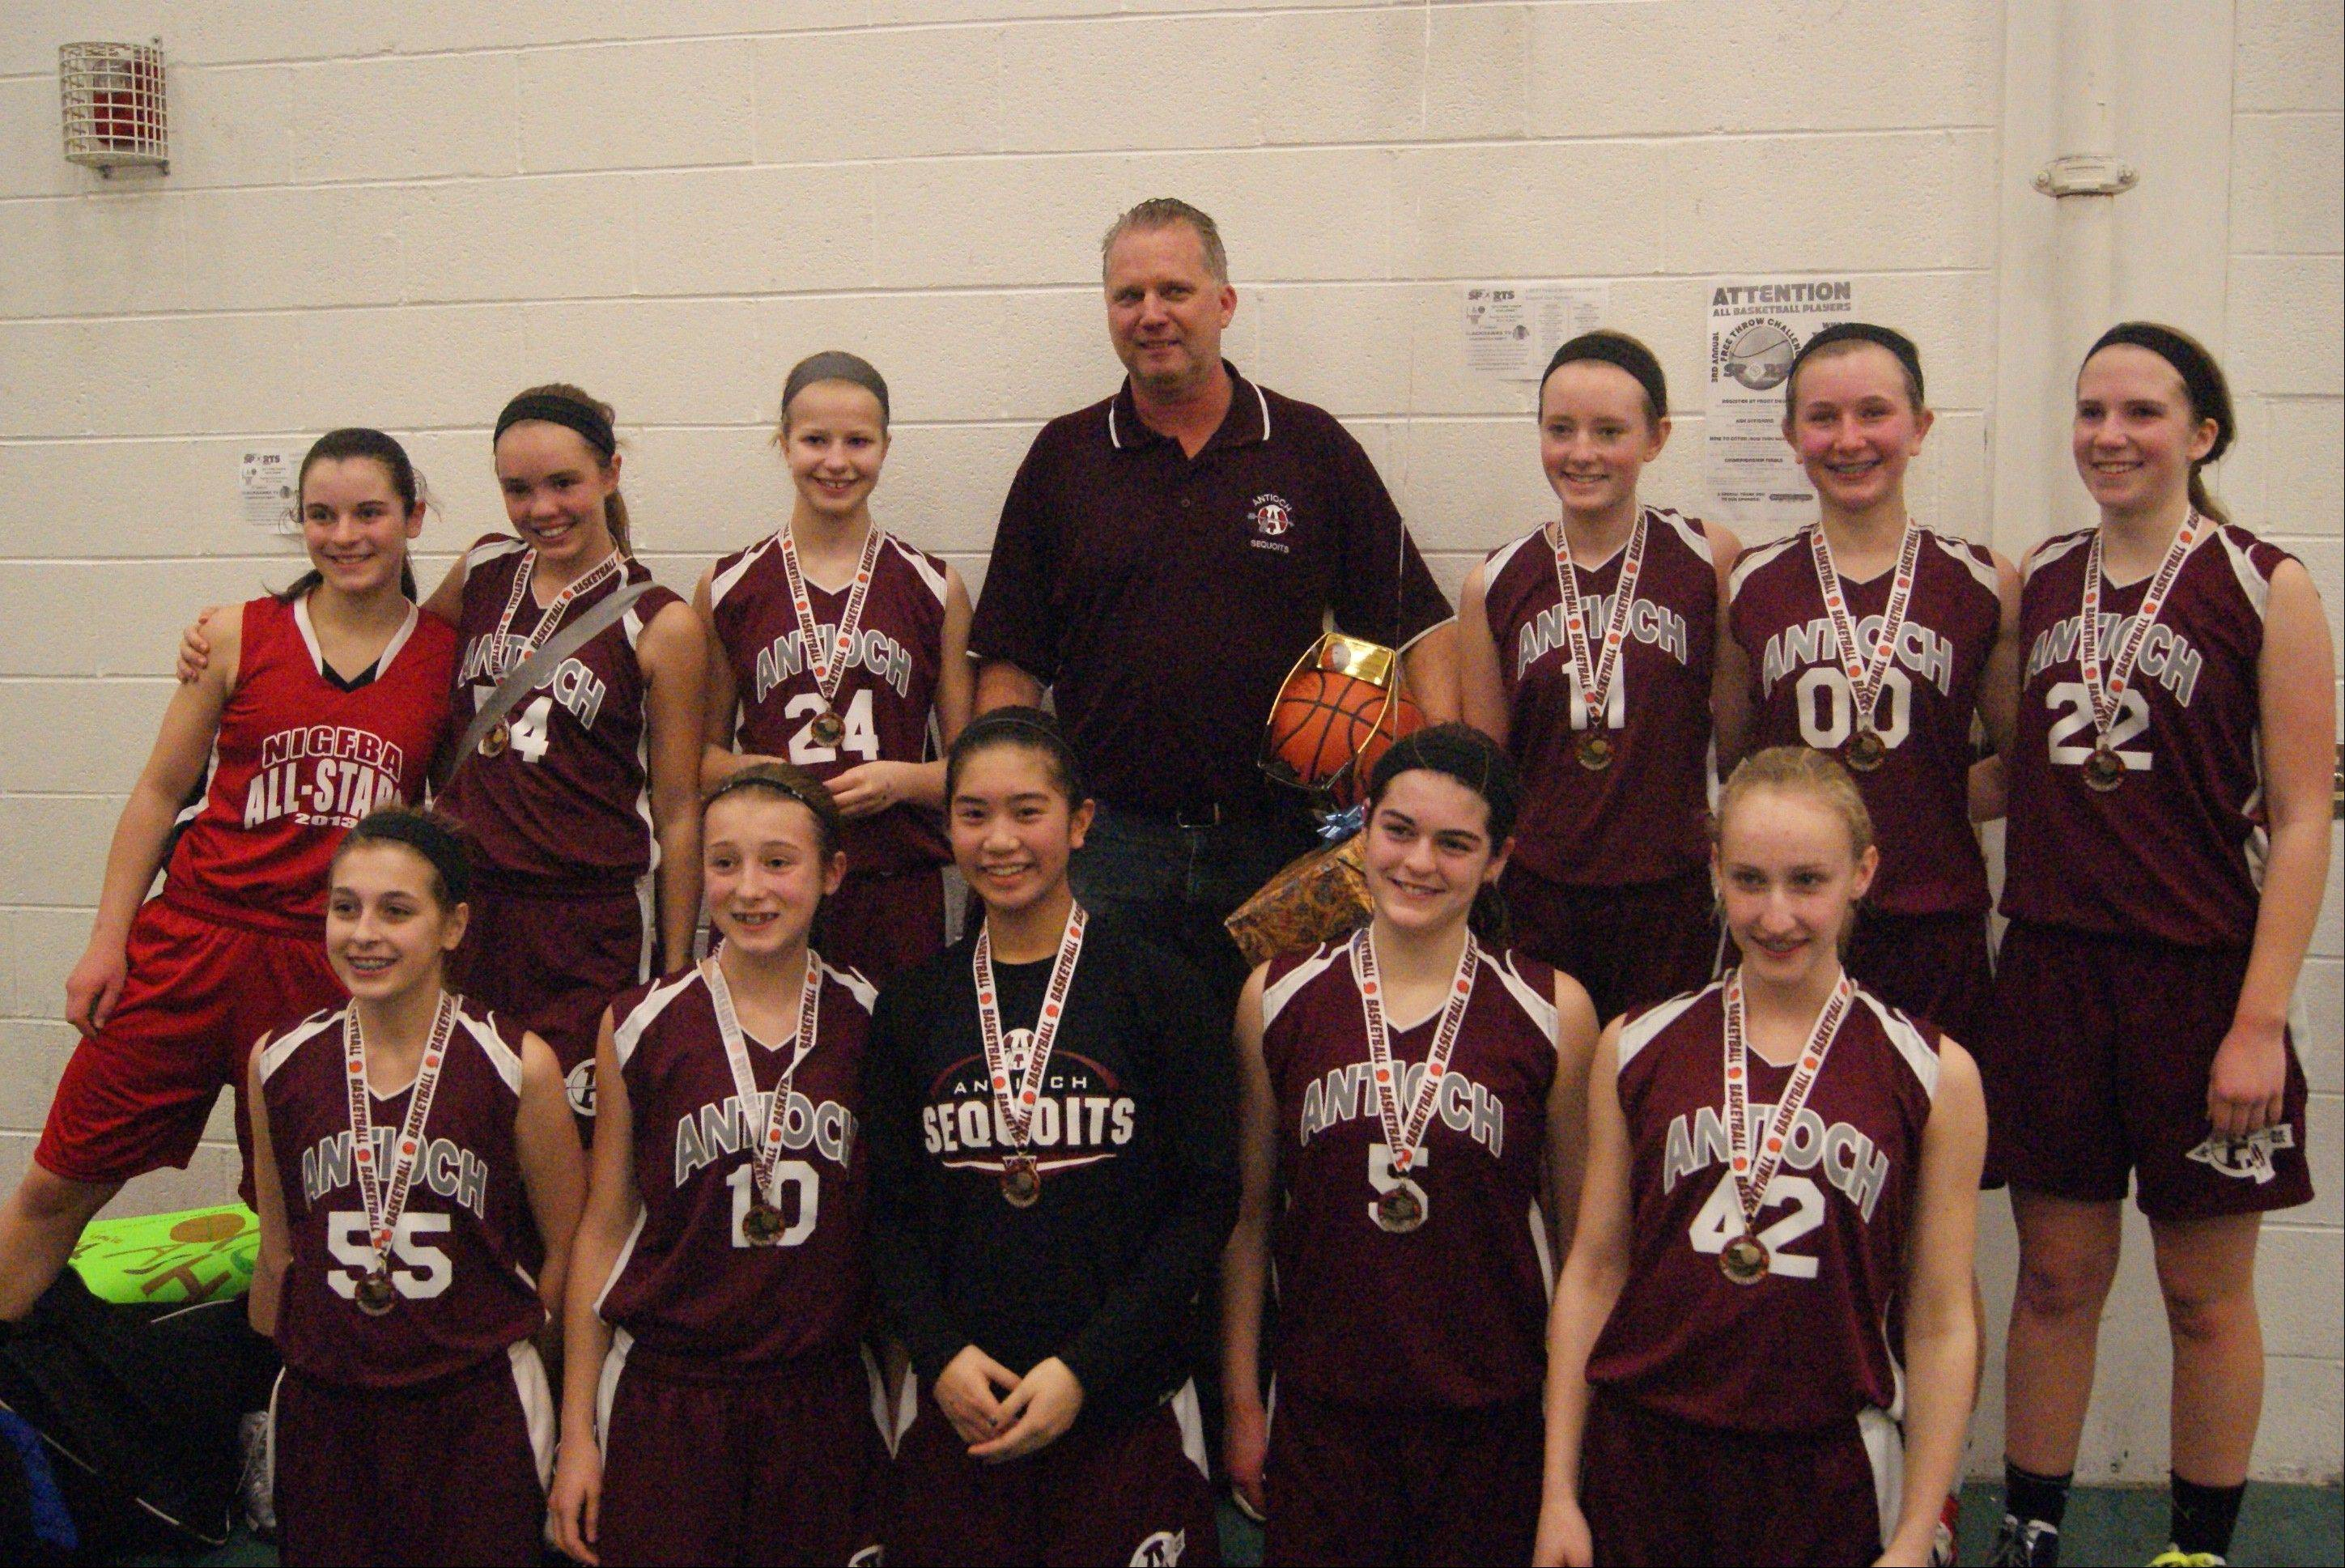 The Antioch Junior Sequoits eighth grade girls feeder basketball team coached by Jim Kelly, made it to the finals in a recent year-end tournament. It was the final season for Kelly, who co-founded the program nine years ago.